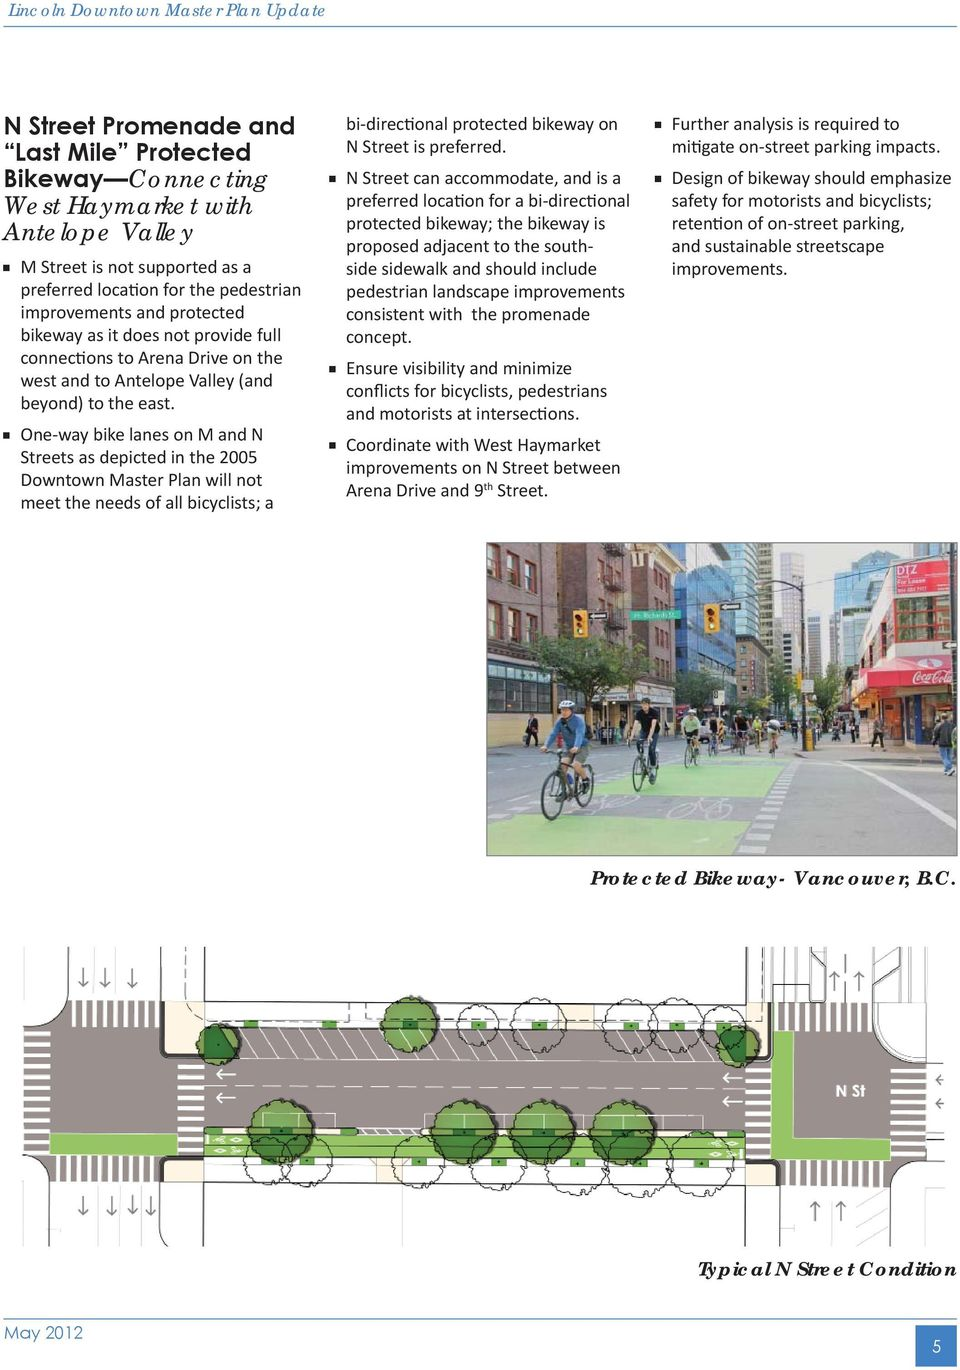 One-way bike lanes on M and N Streets as depicted in the 2005 Downtown Master Plan will not meet the needs of all bicyclists; a bi-directional protected bikeway on N Street is preferred.